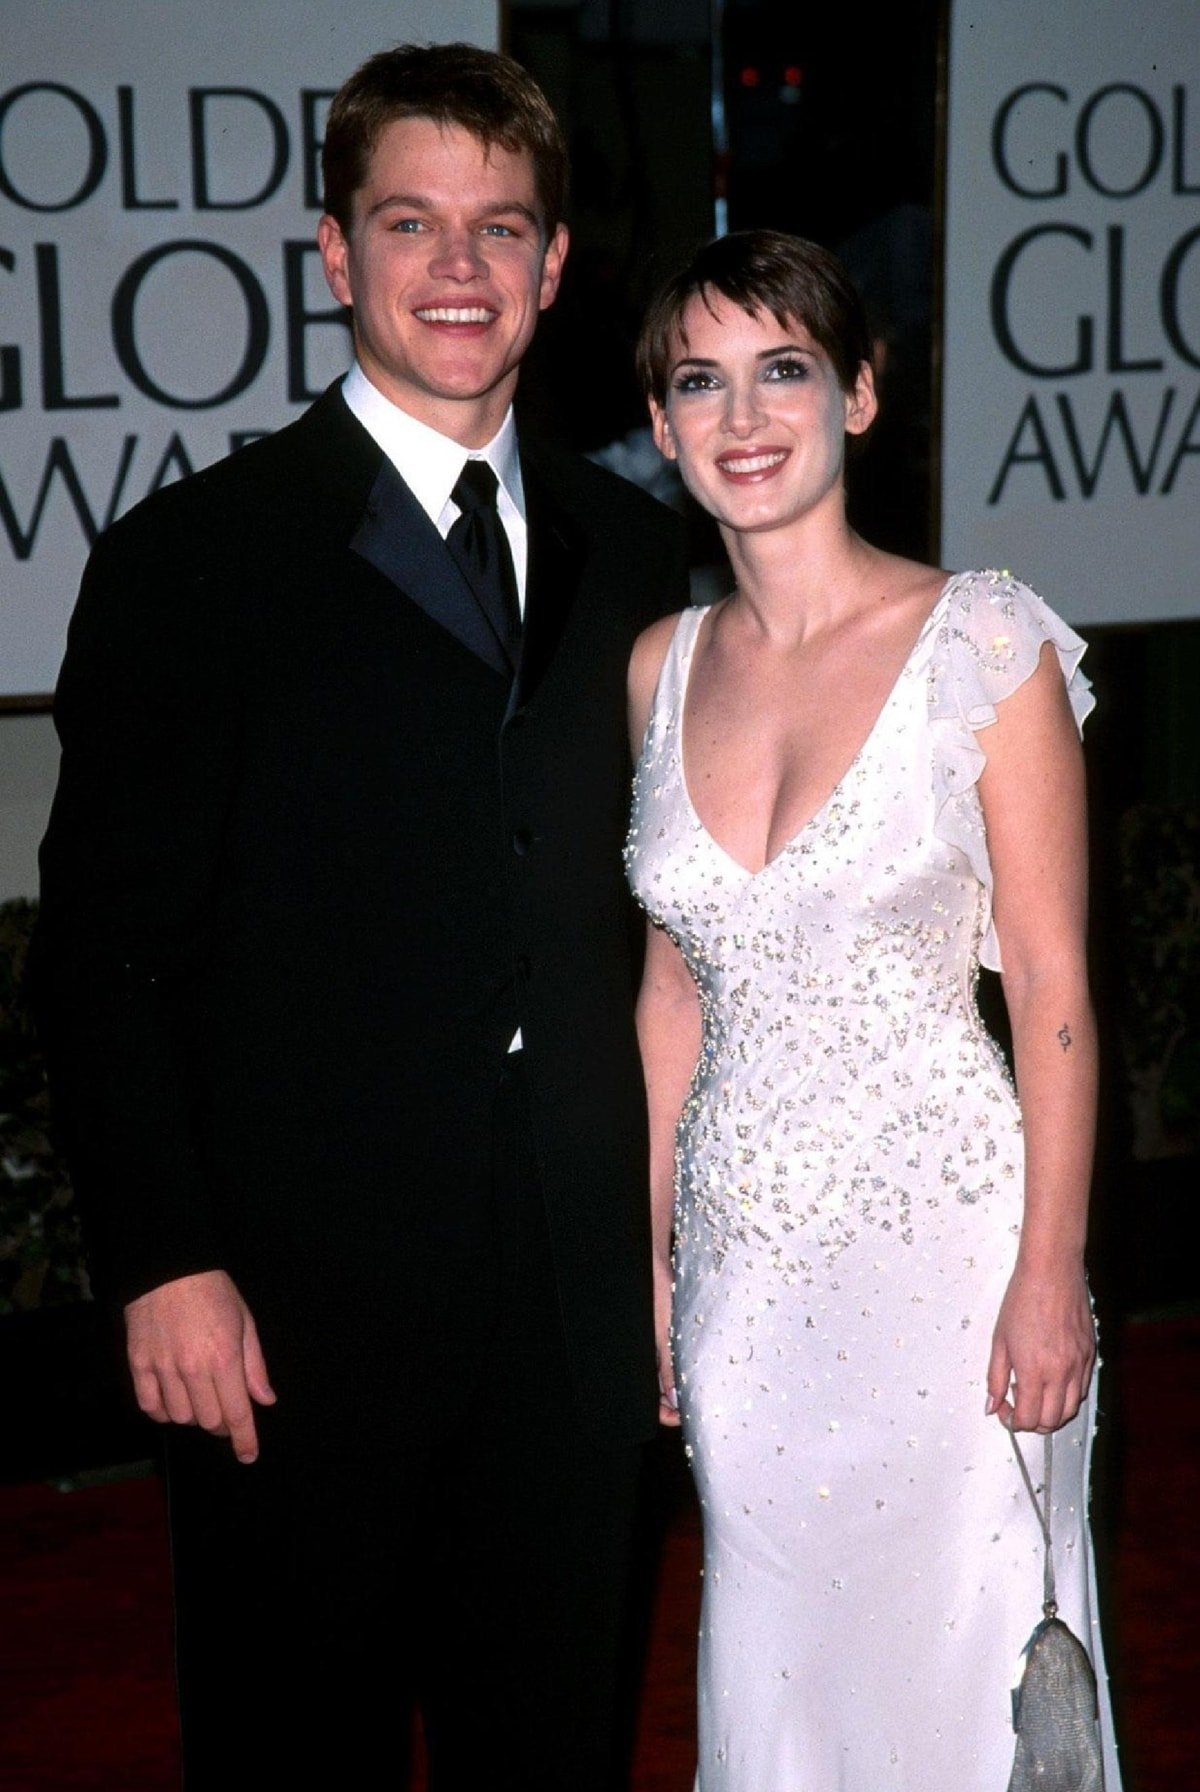 Matt Damon and Winona Ryder met through Gwyneth Paltrow in 1997 and dated for three years